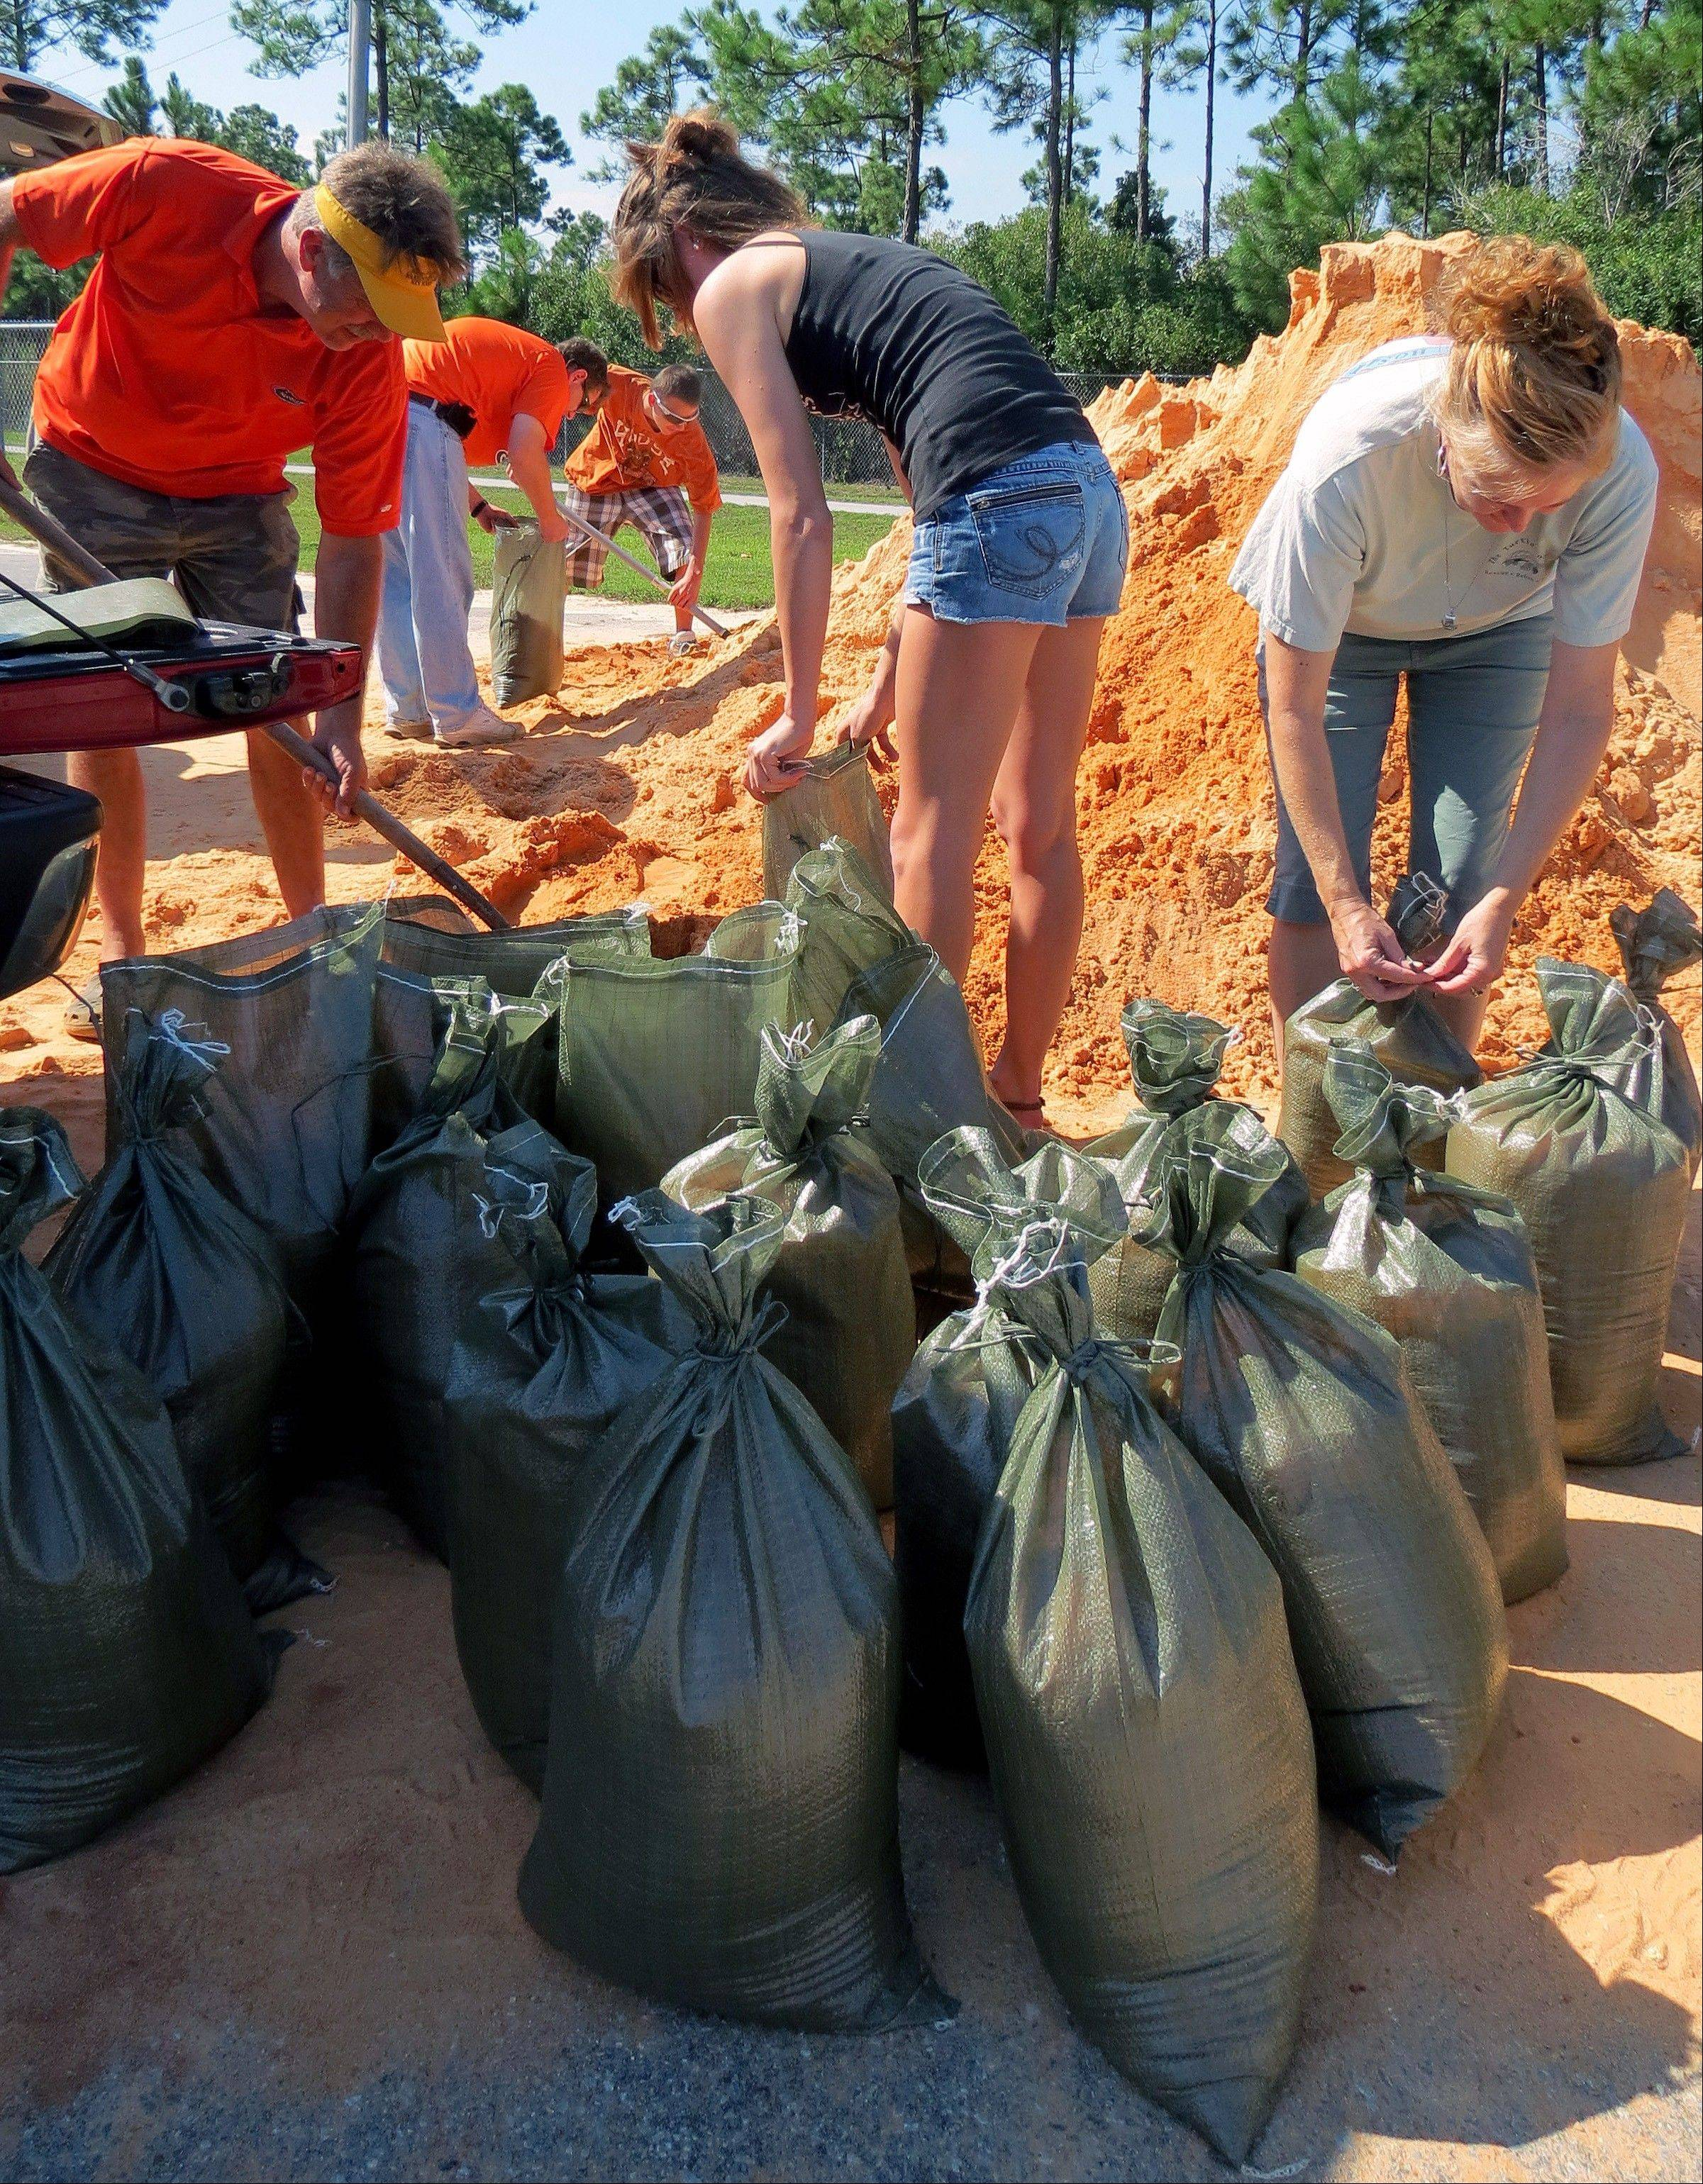 Mark Butler, from left, Danielle Butler and Wendi Butler work to fill sandbags Saturday at the Tiger Point Recreational Facility in Gulf Breeze, Fla., in anticipation of Tropical Storm Isaac.